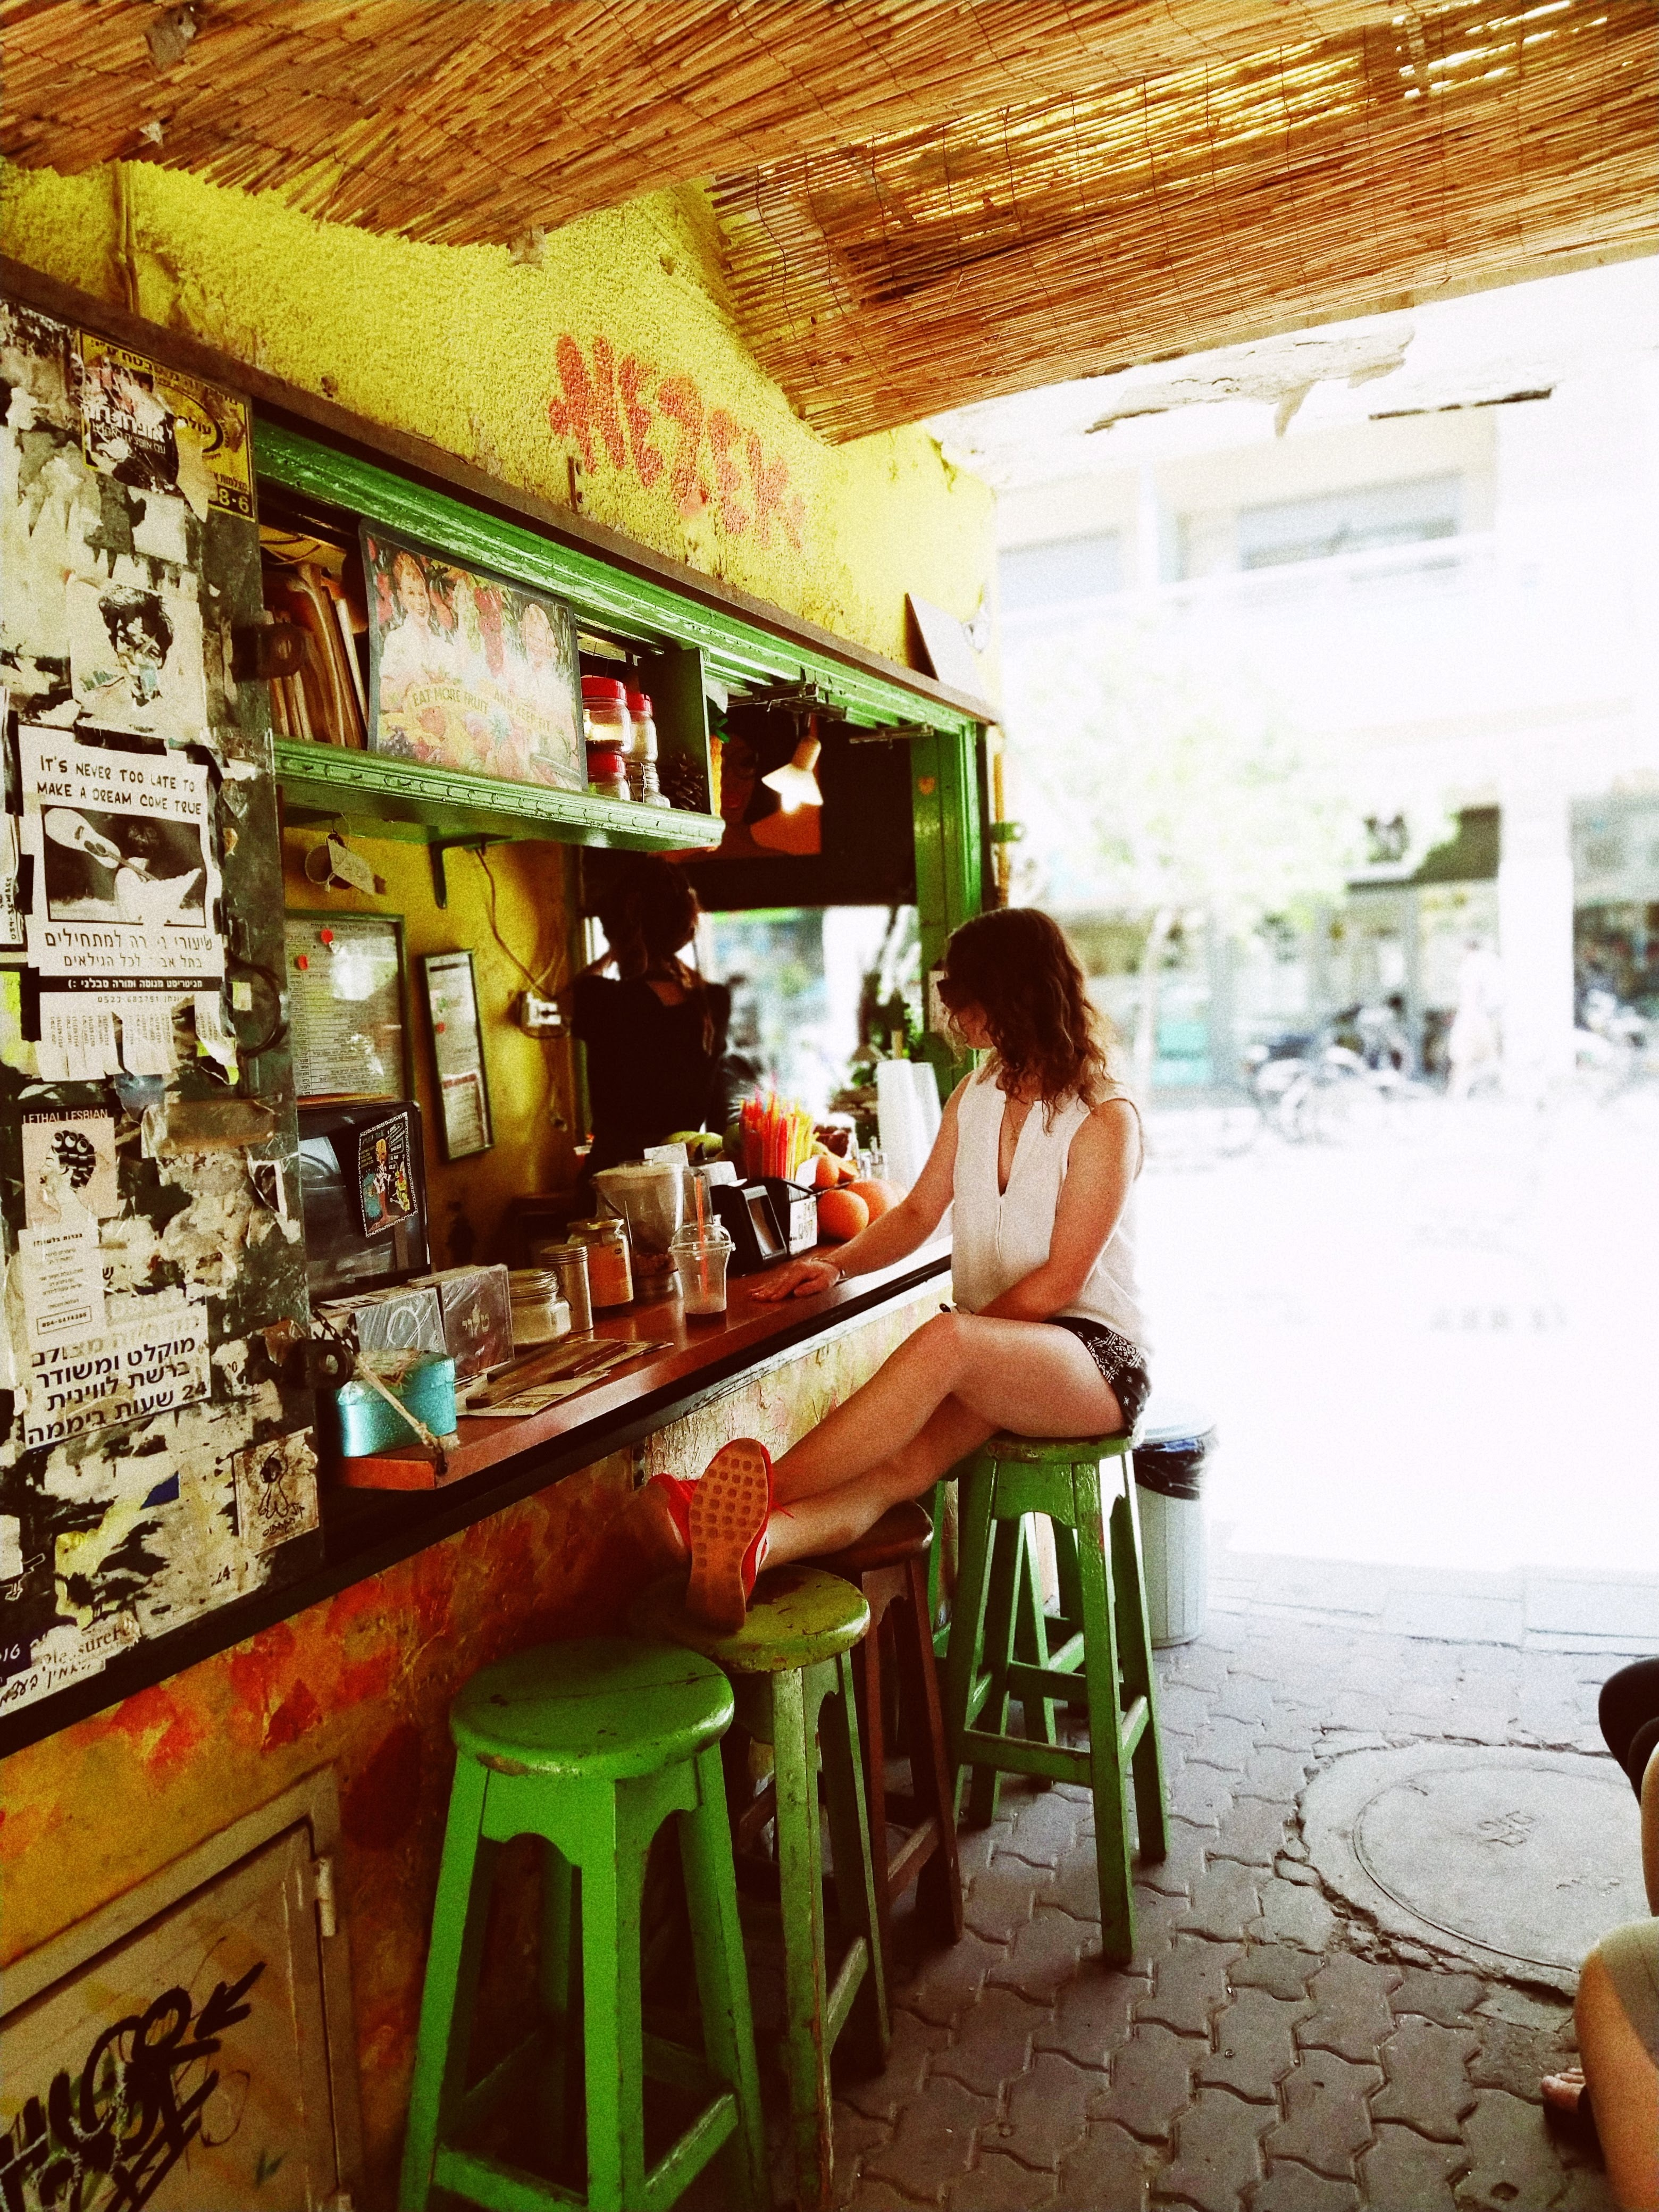 woman sitting on stools near bar counter during daytime